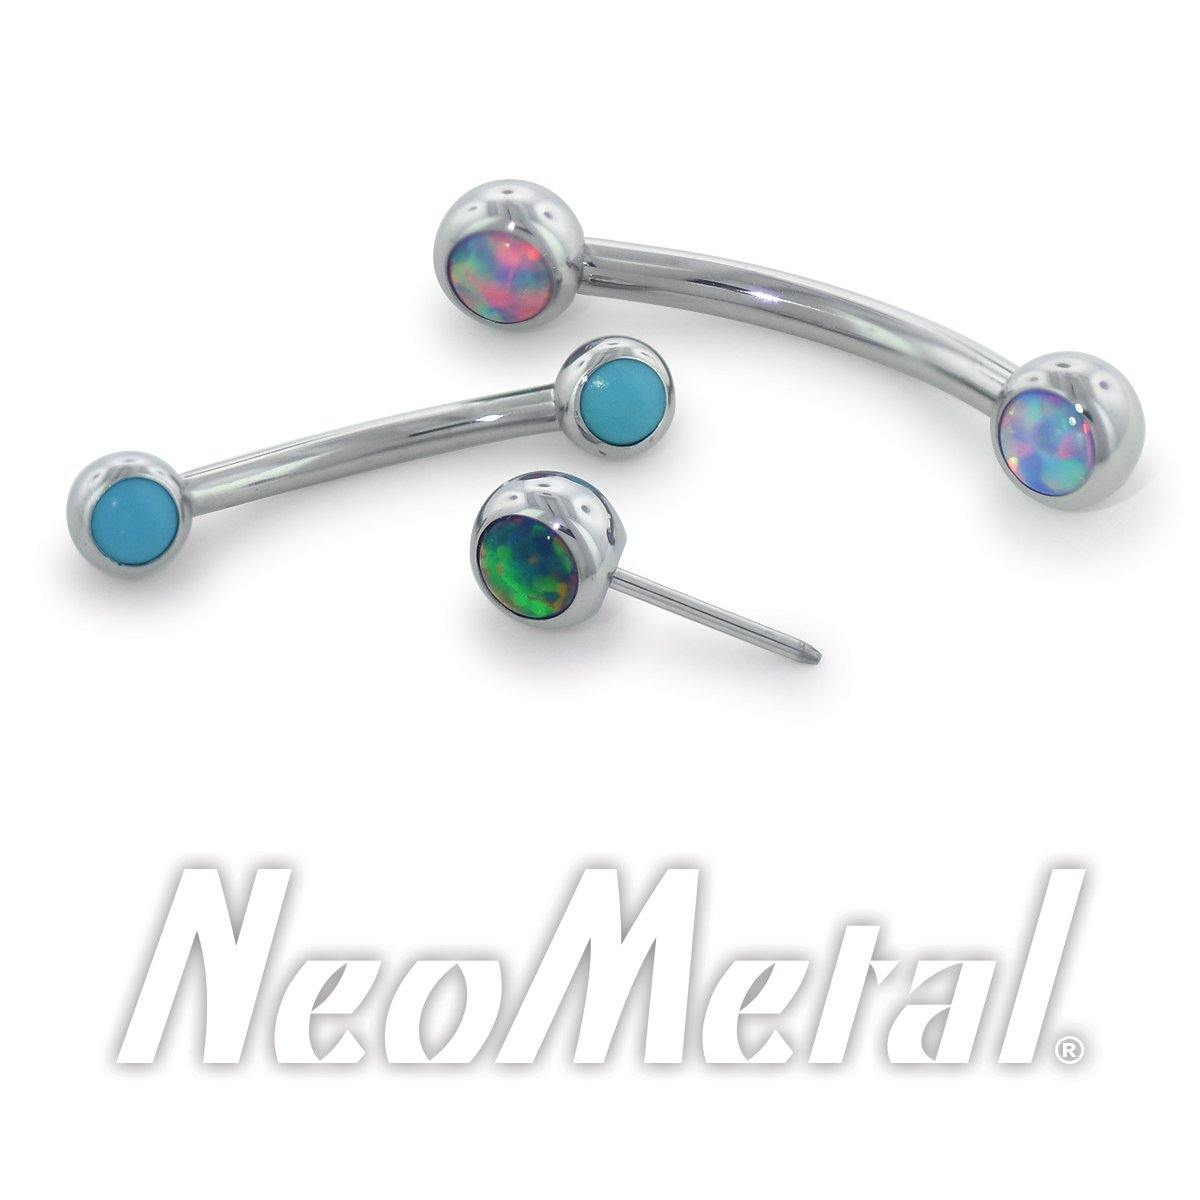 Neometal Side Set Capri Blue Opal Cabochon Curved Barbell Threadless / 2.5Mm 6.4Mm 1/4